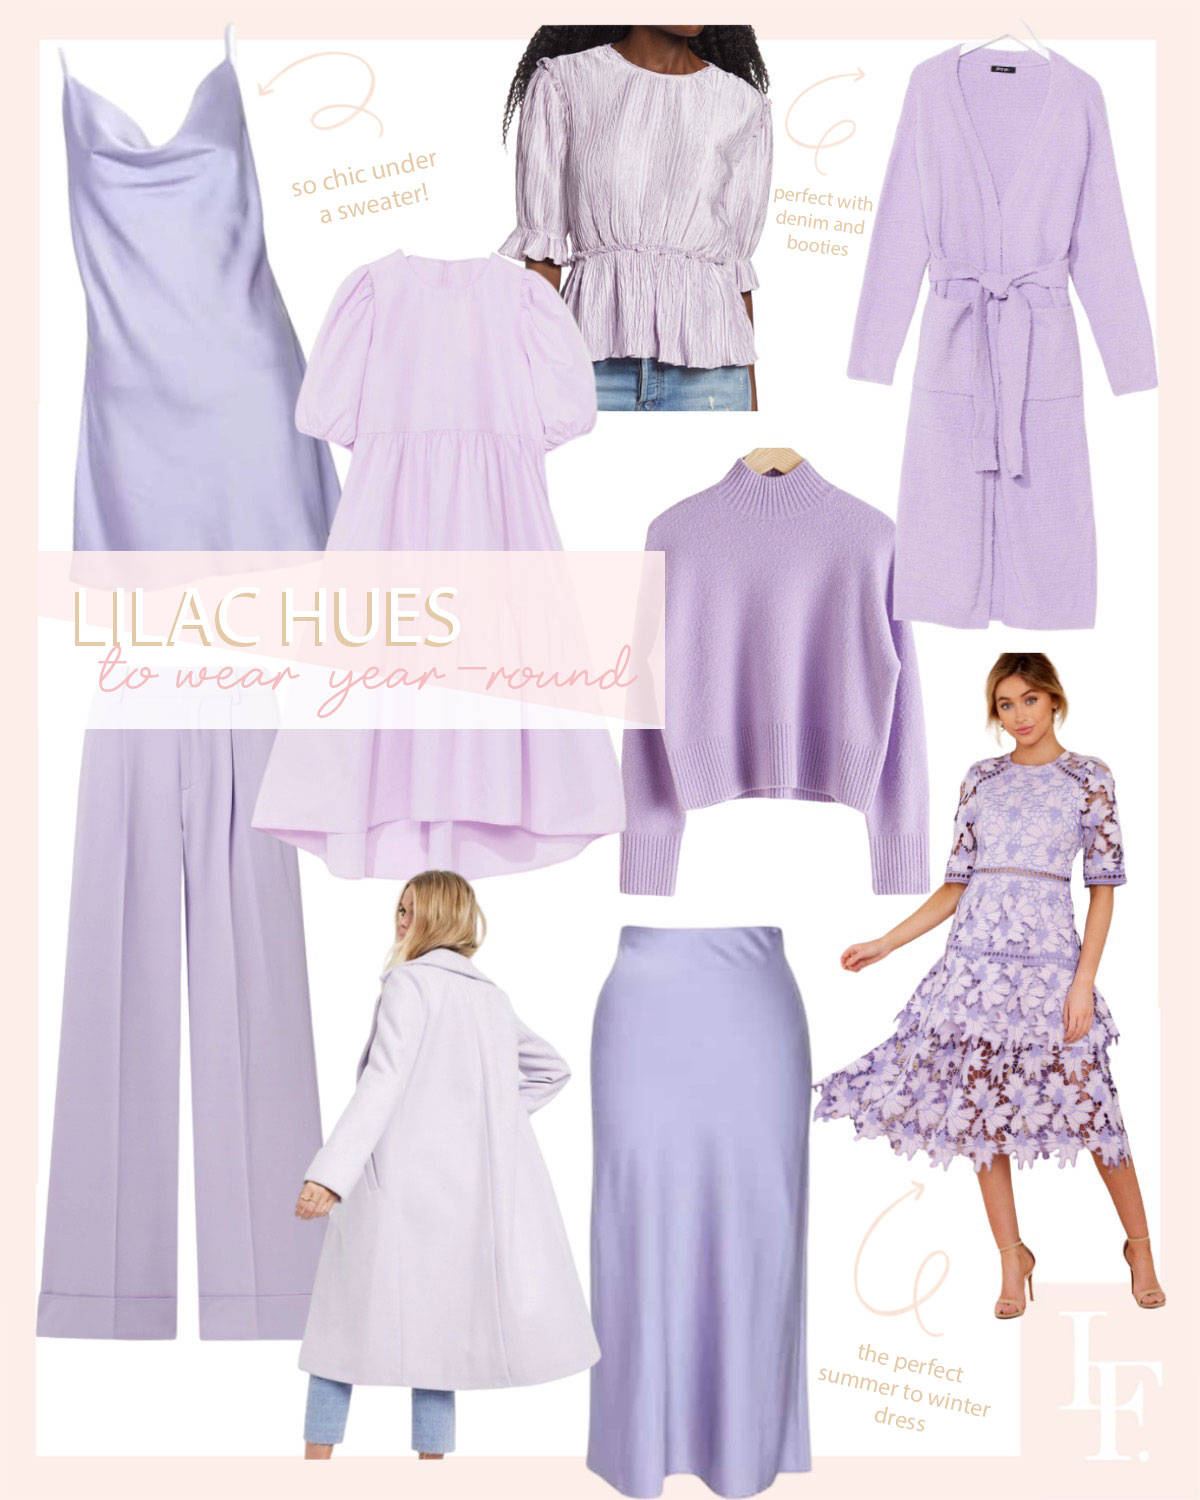 Best lilac fashion 2020 for summer to fall, featured by San Francisco style blogger Lombard and Fifth.